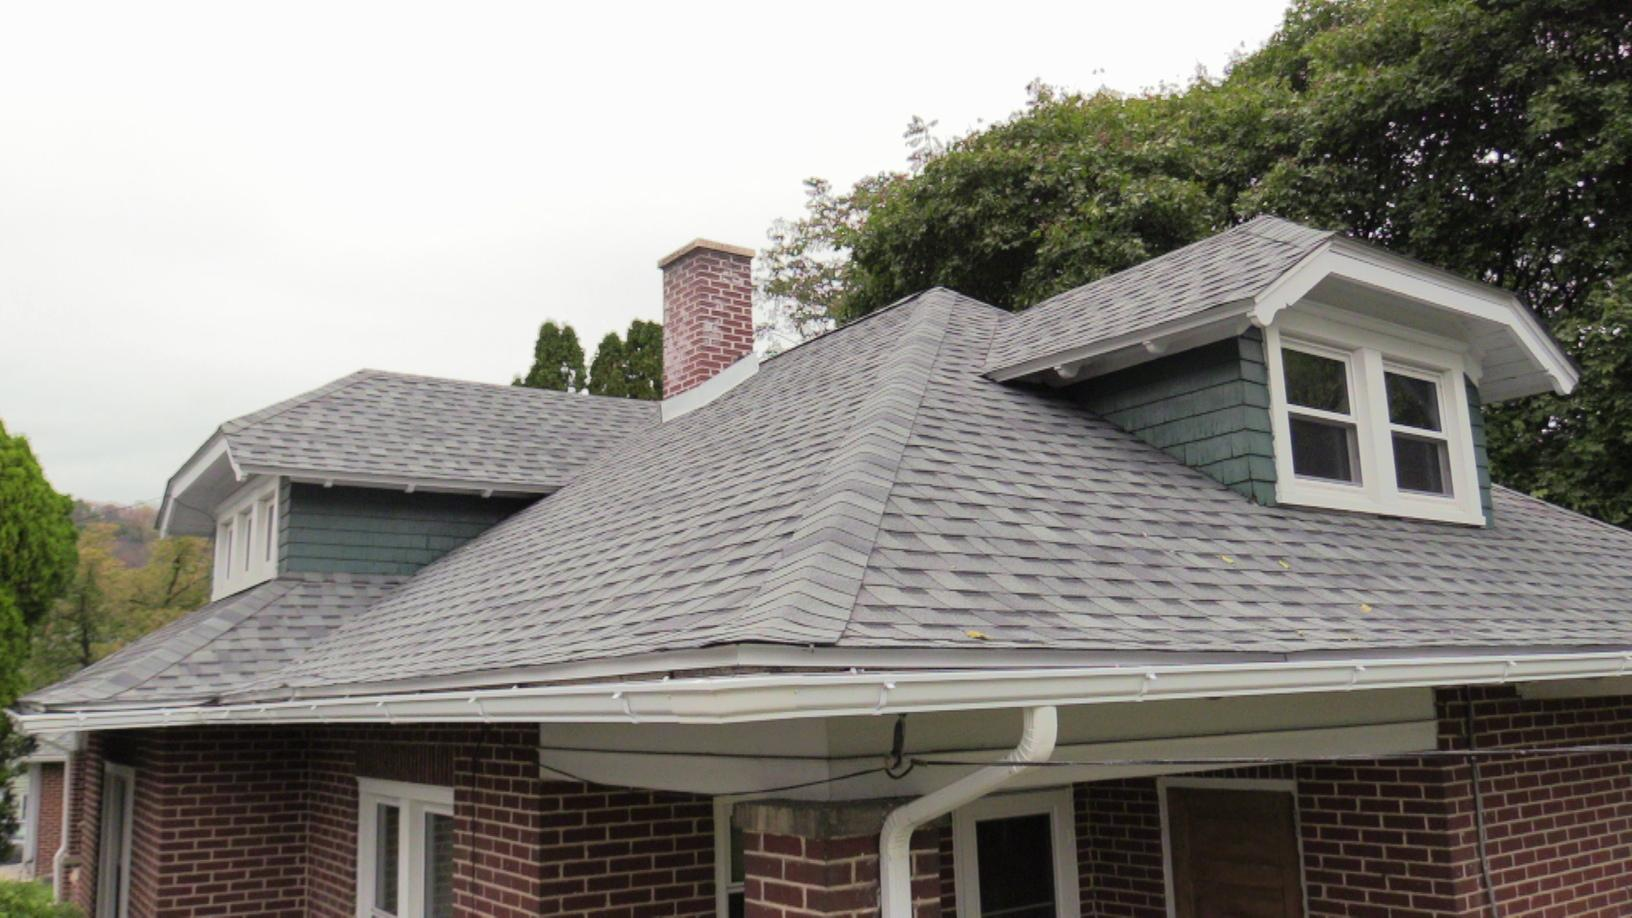 Brand New Roofing Replacement in Walnutport, Pennsylvania - After Photo